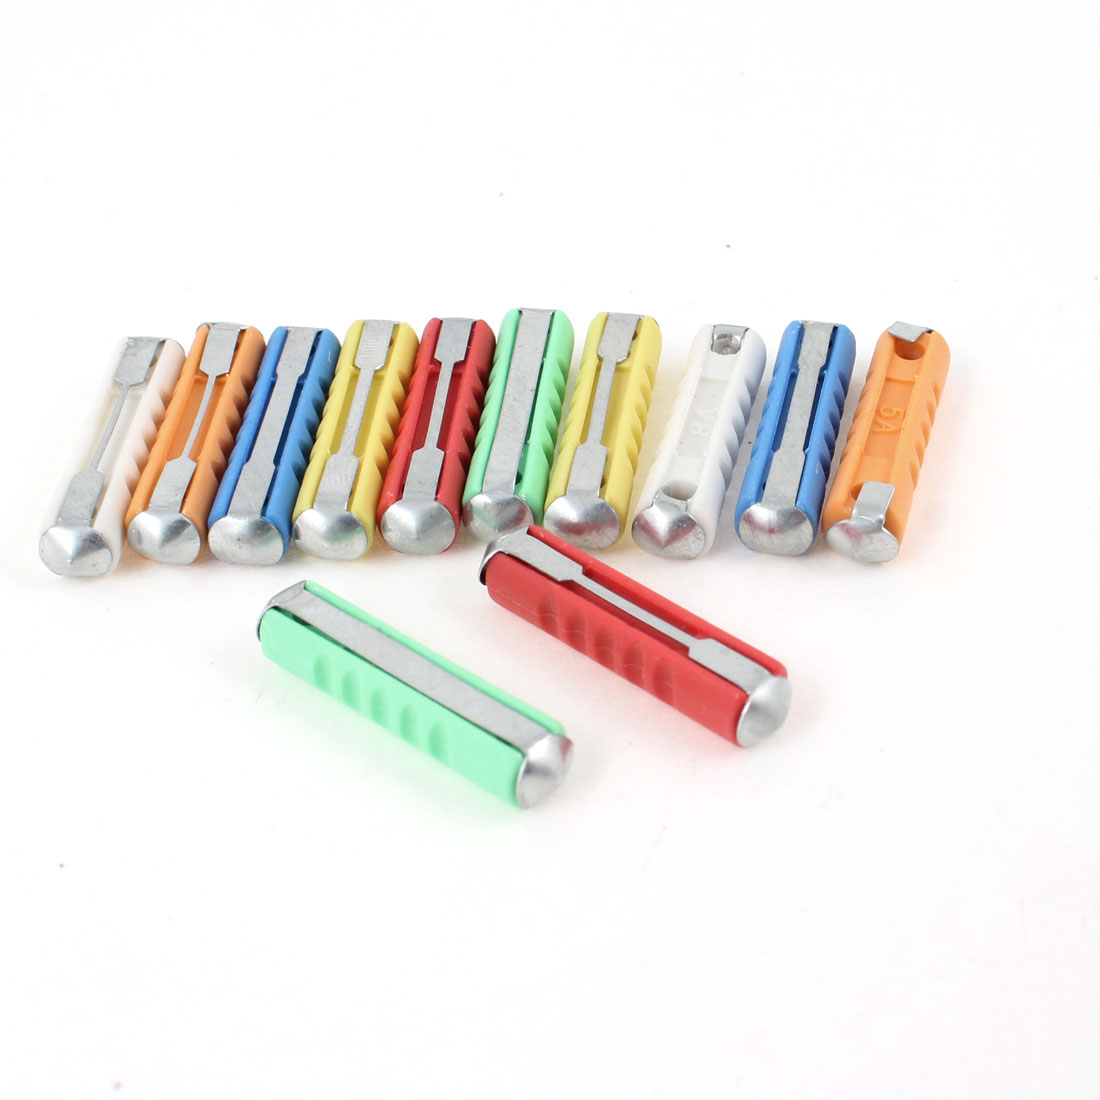 12PCS Colored Vehicle Protective Continental Torpedo Fuse 5A 8A 16A 20A 25A 30A